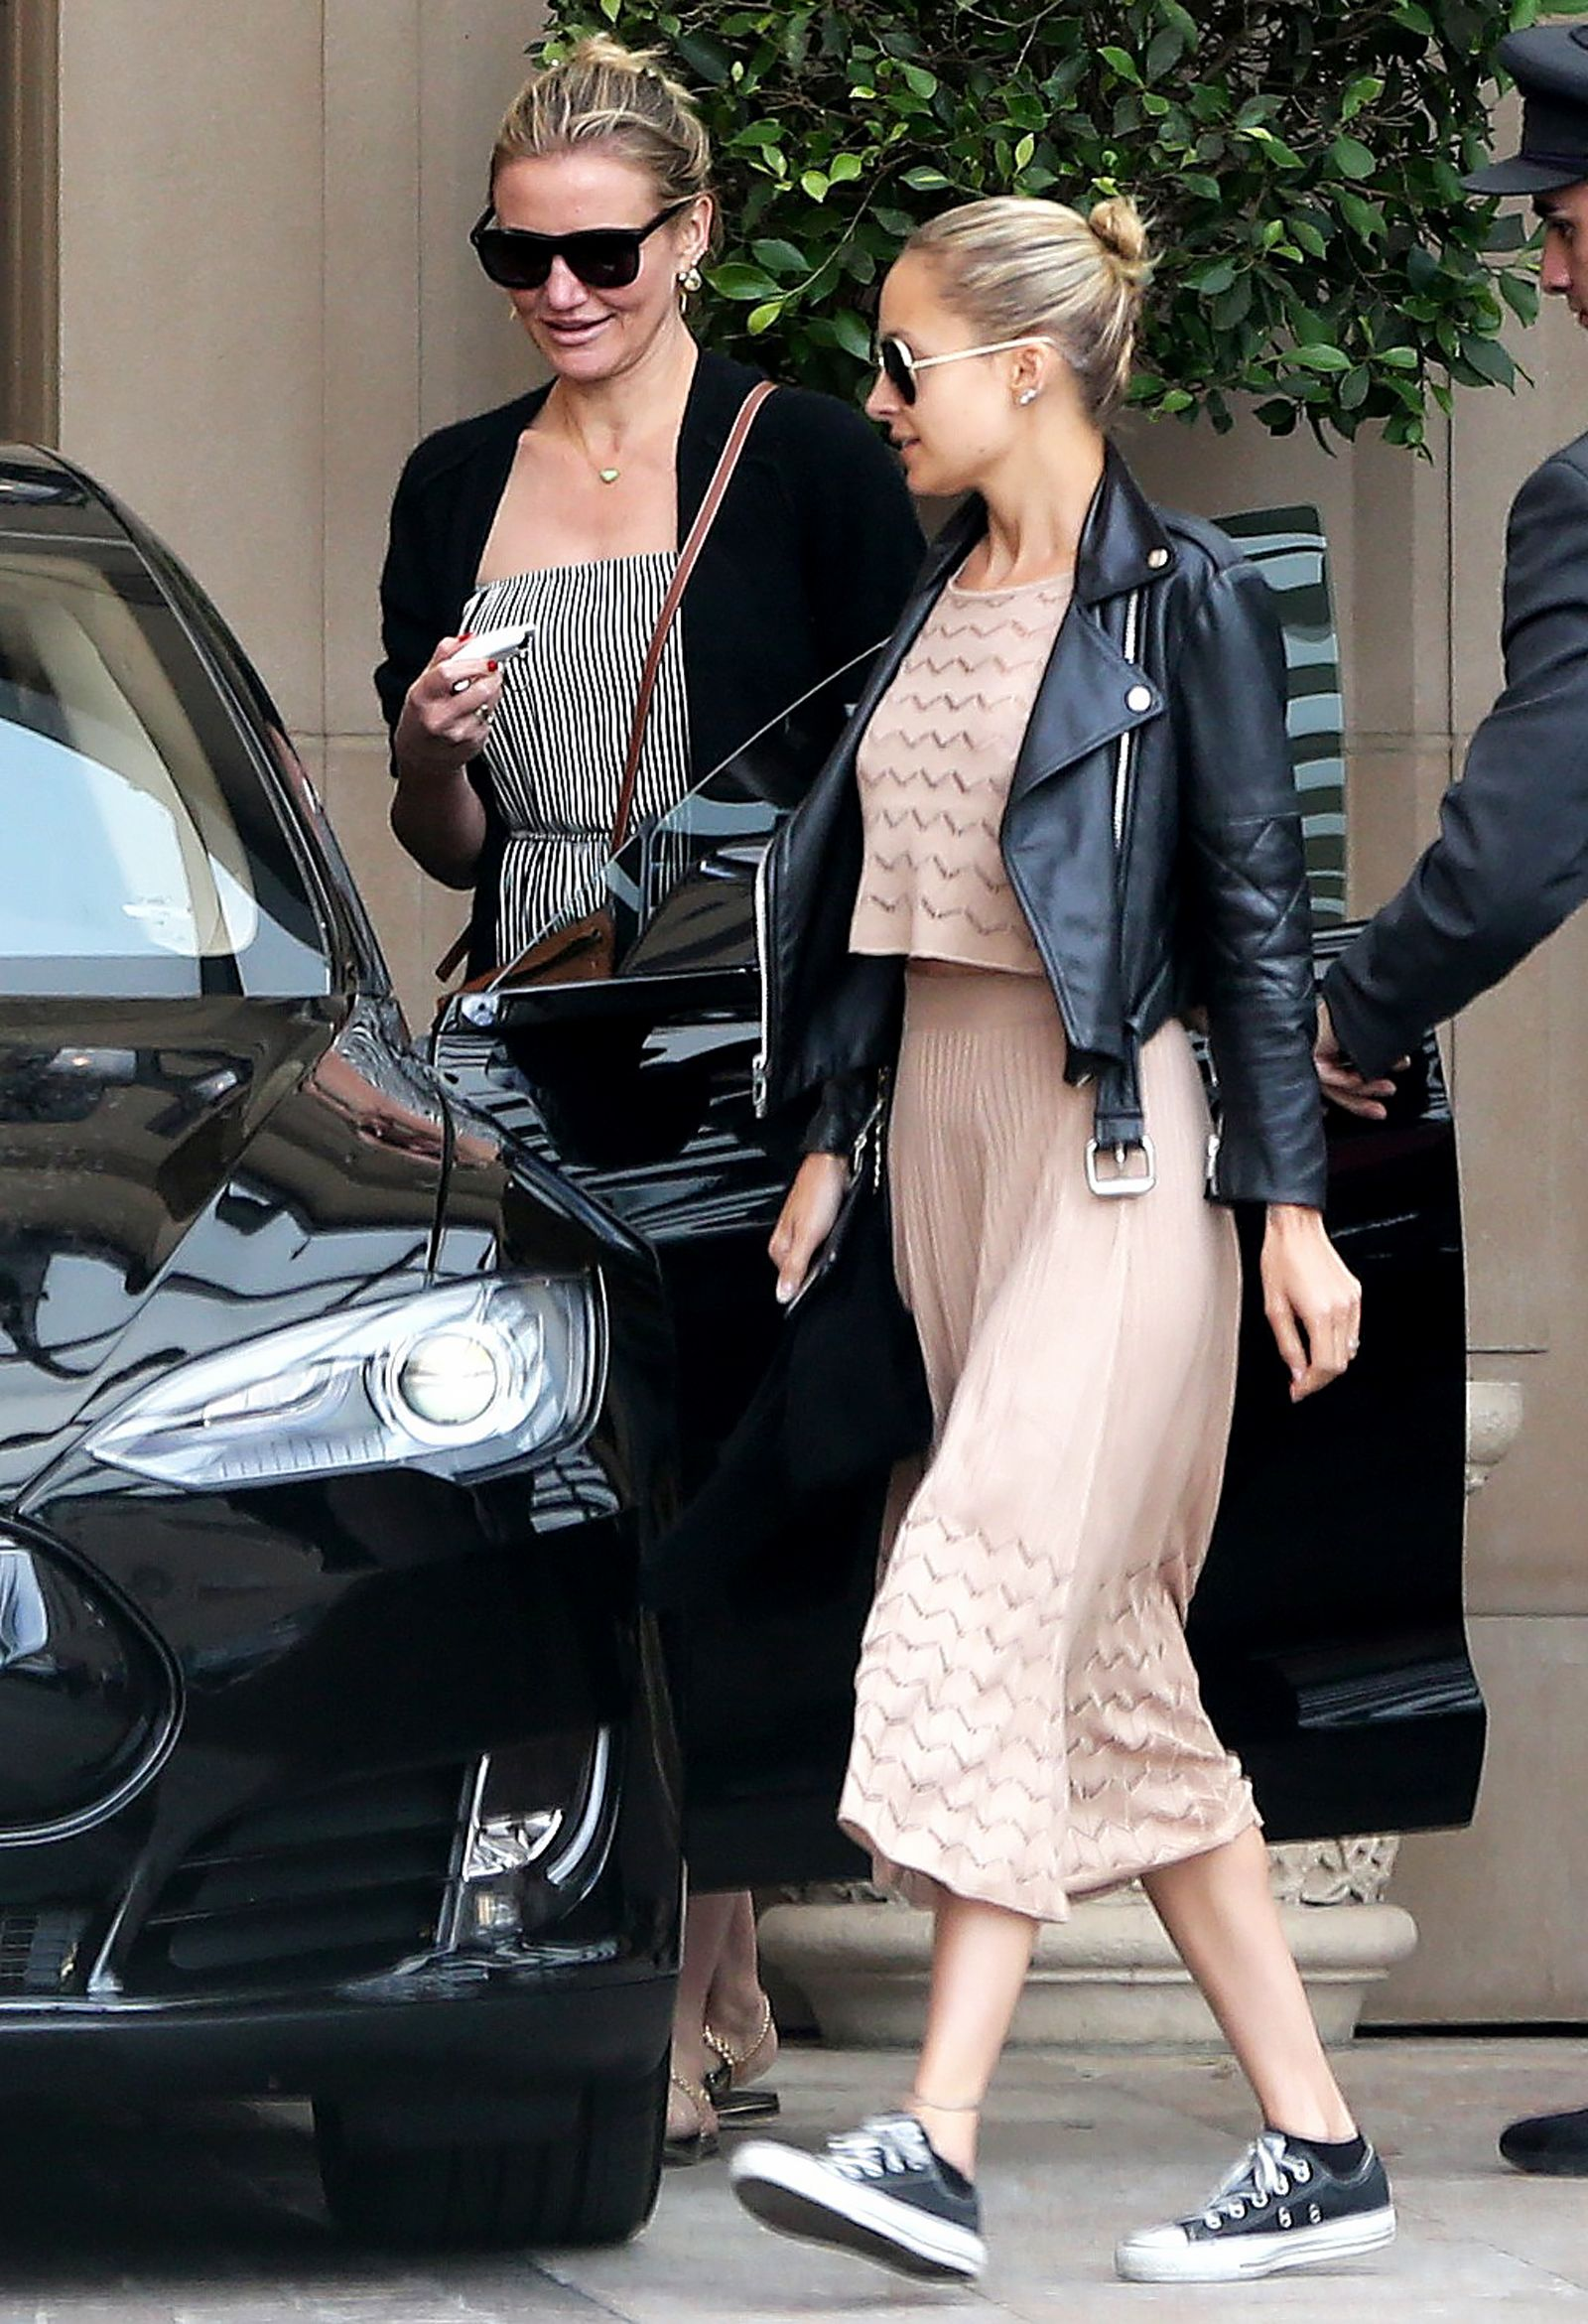 e09dcbcc7e9f Nicole Richie & Cameron Diaz Continue to Inspire Us with In-Law Goals |  Read on for more on the BFFs' recent lunch date.